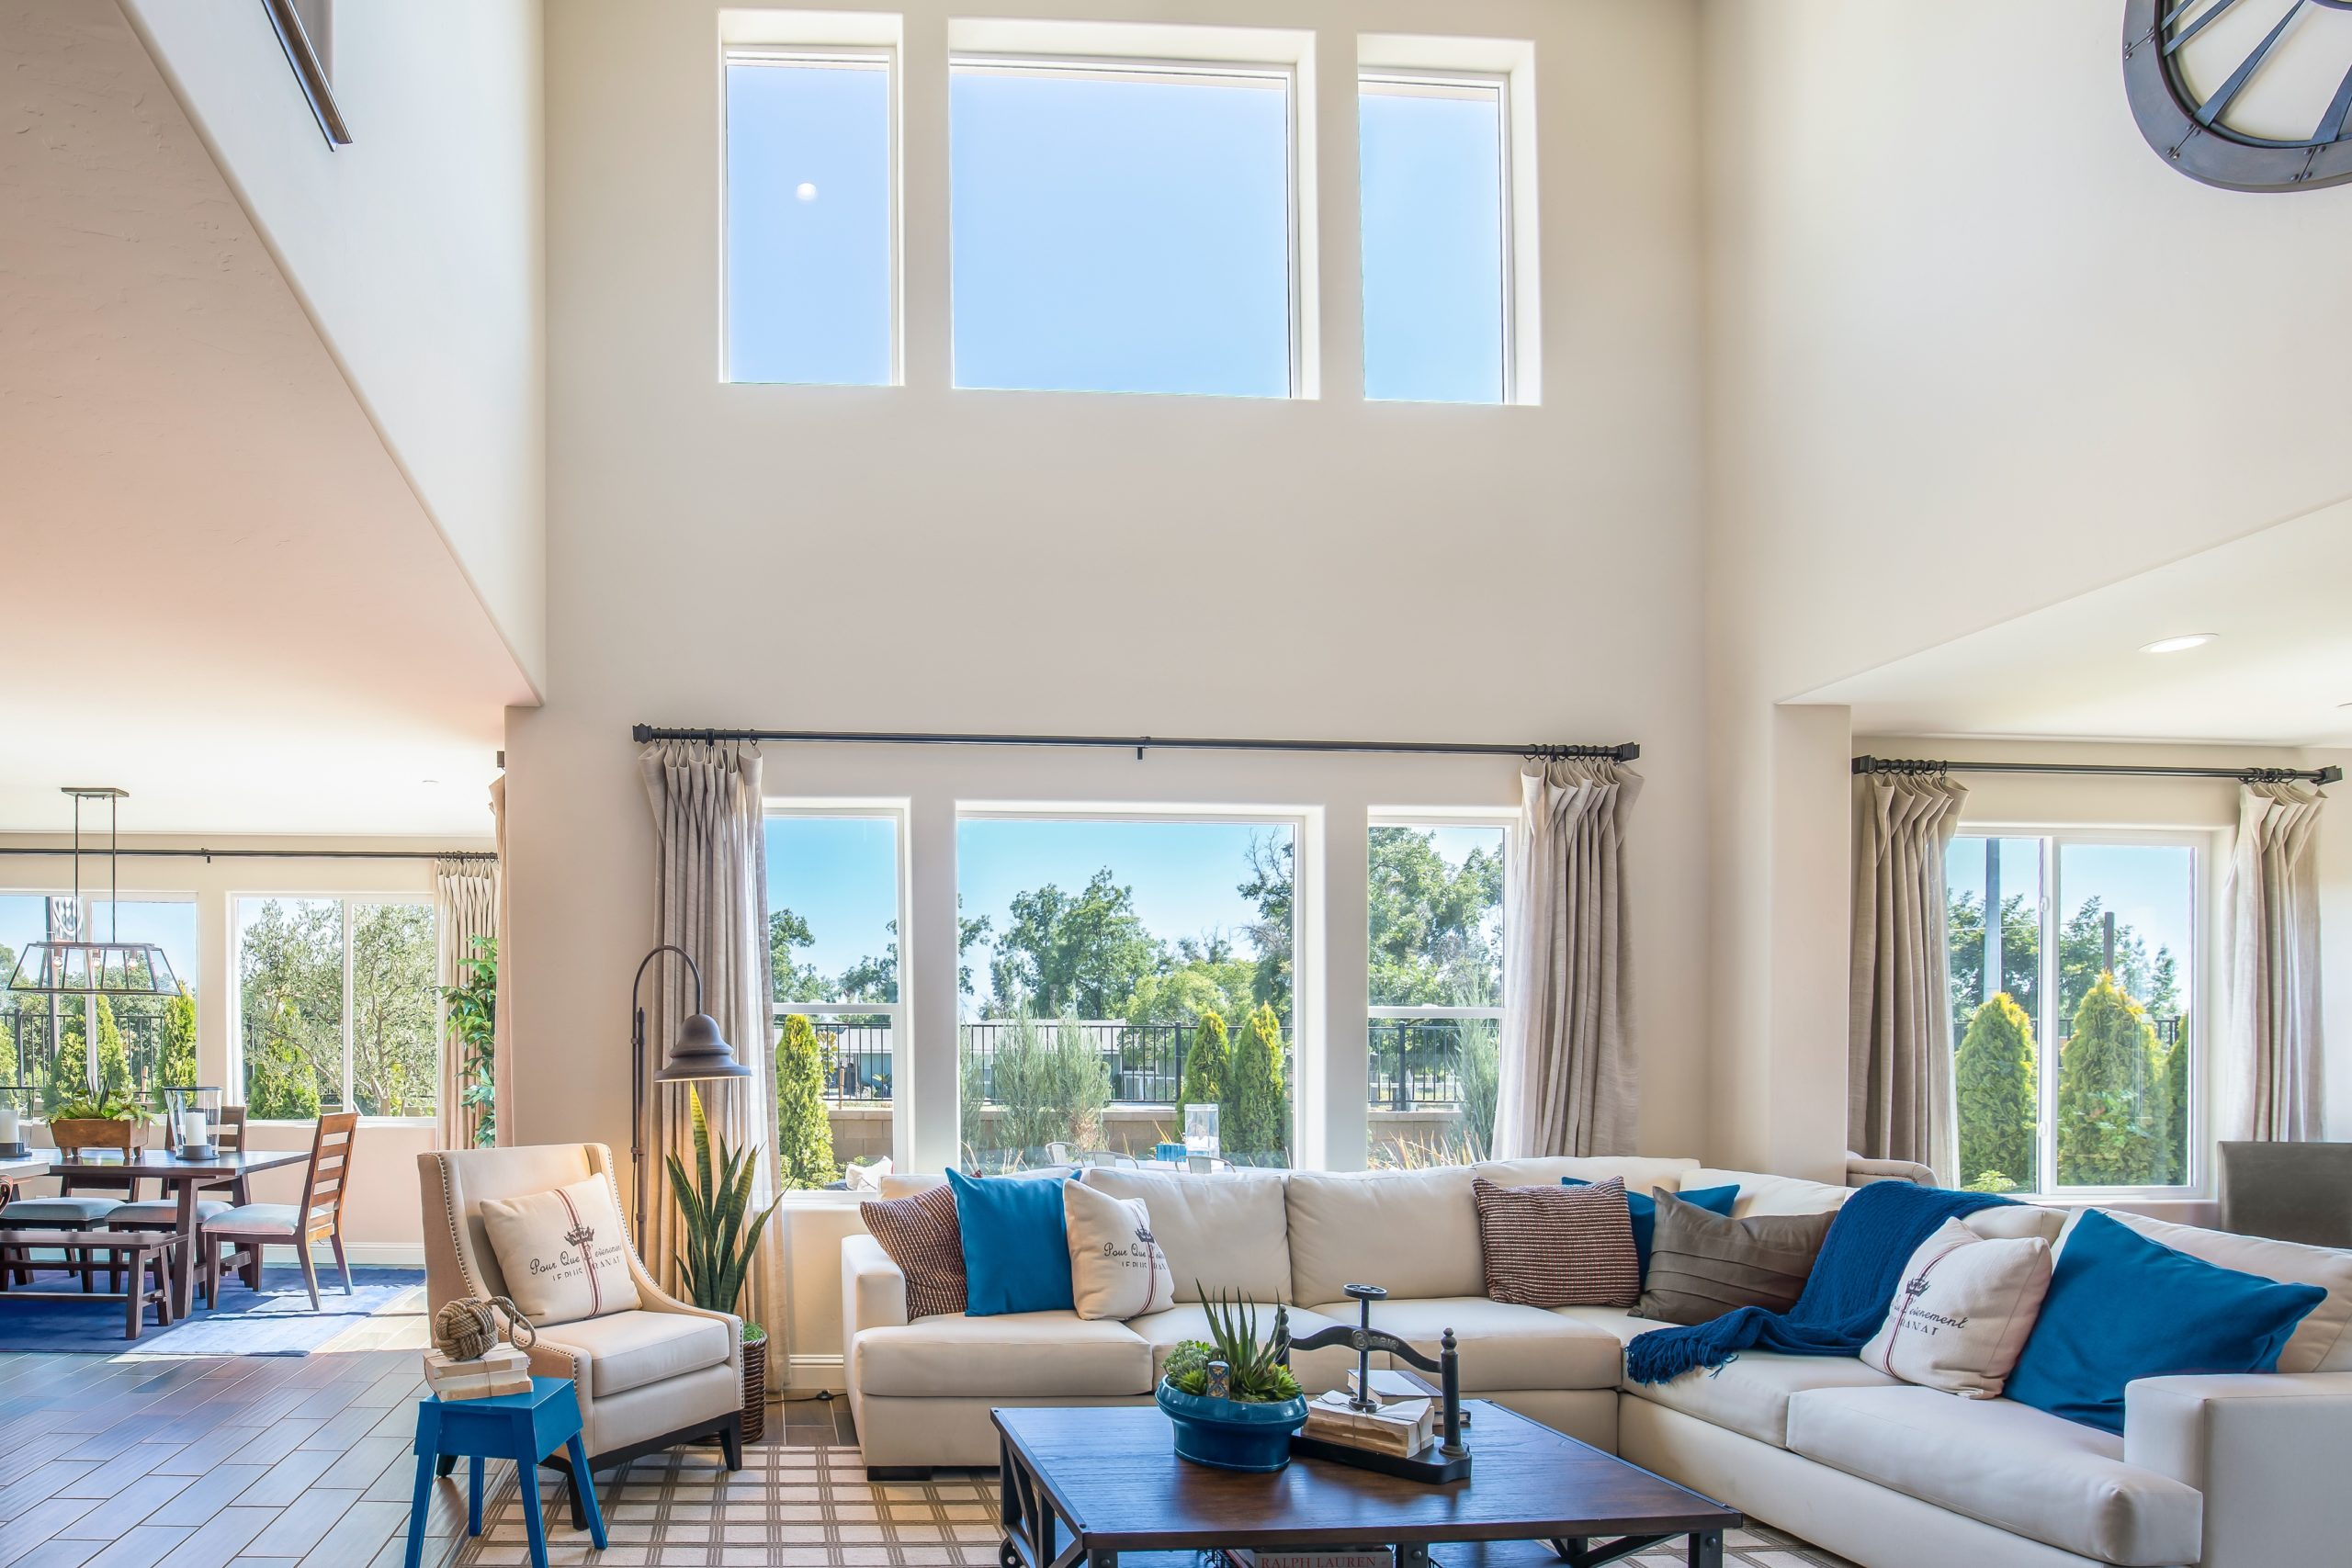 Be Leery of Cheap Replacement Windows - Window Buying Tips from Window Expo Texas